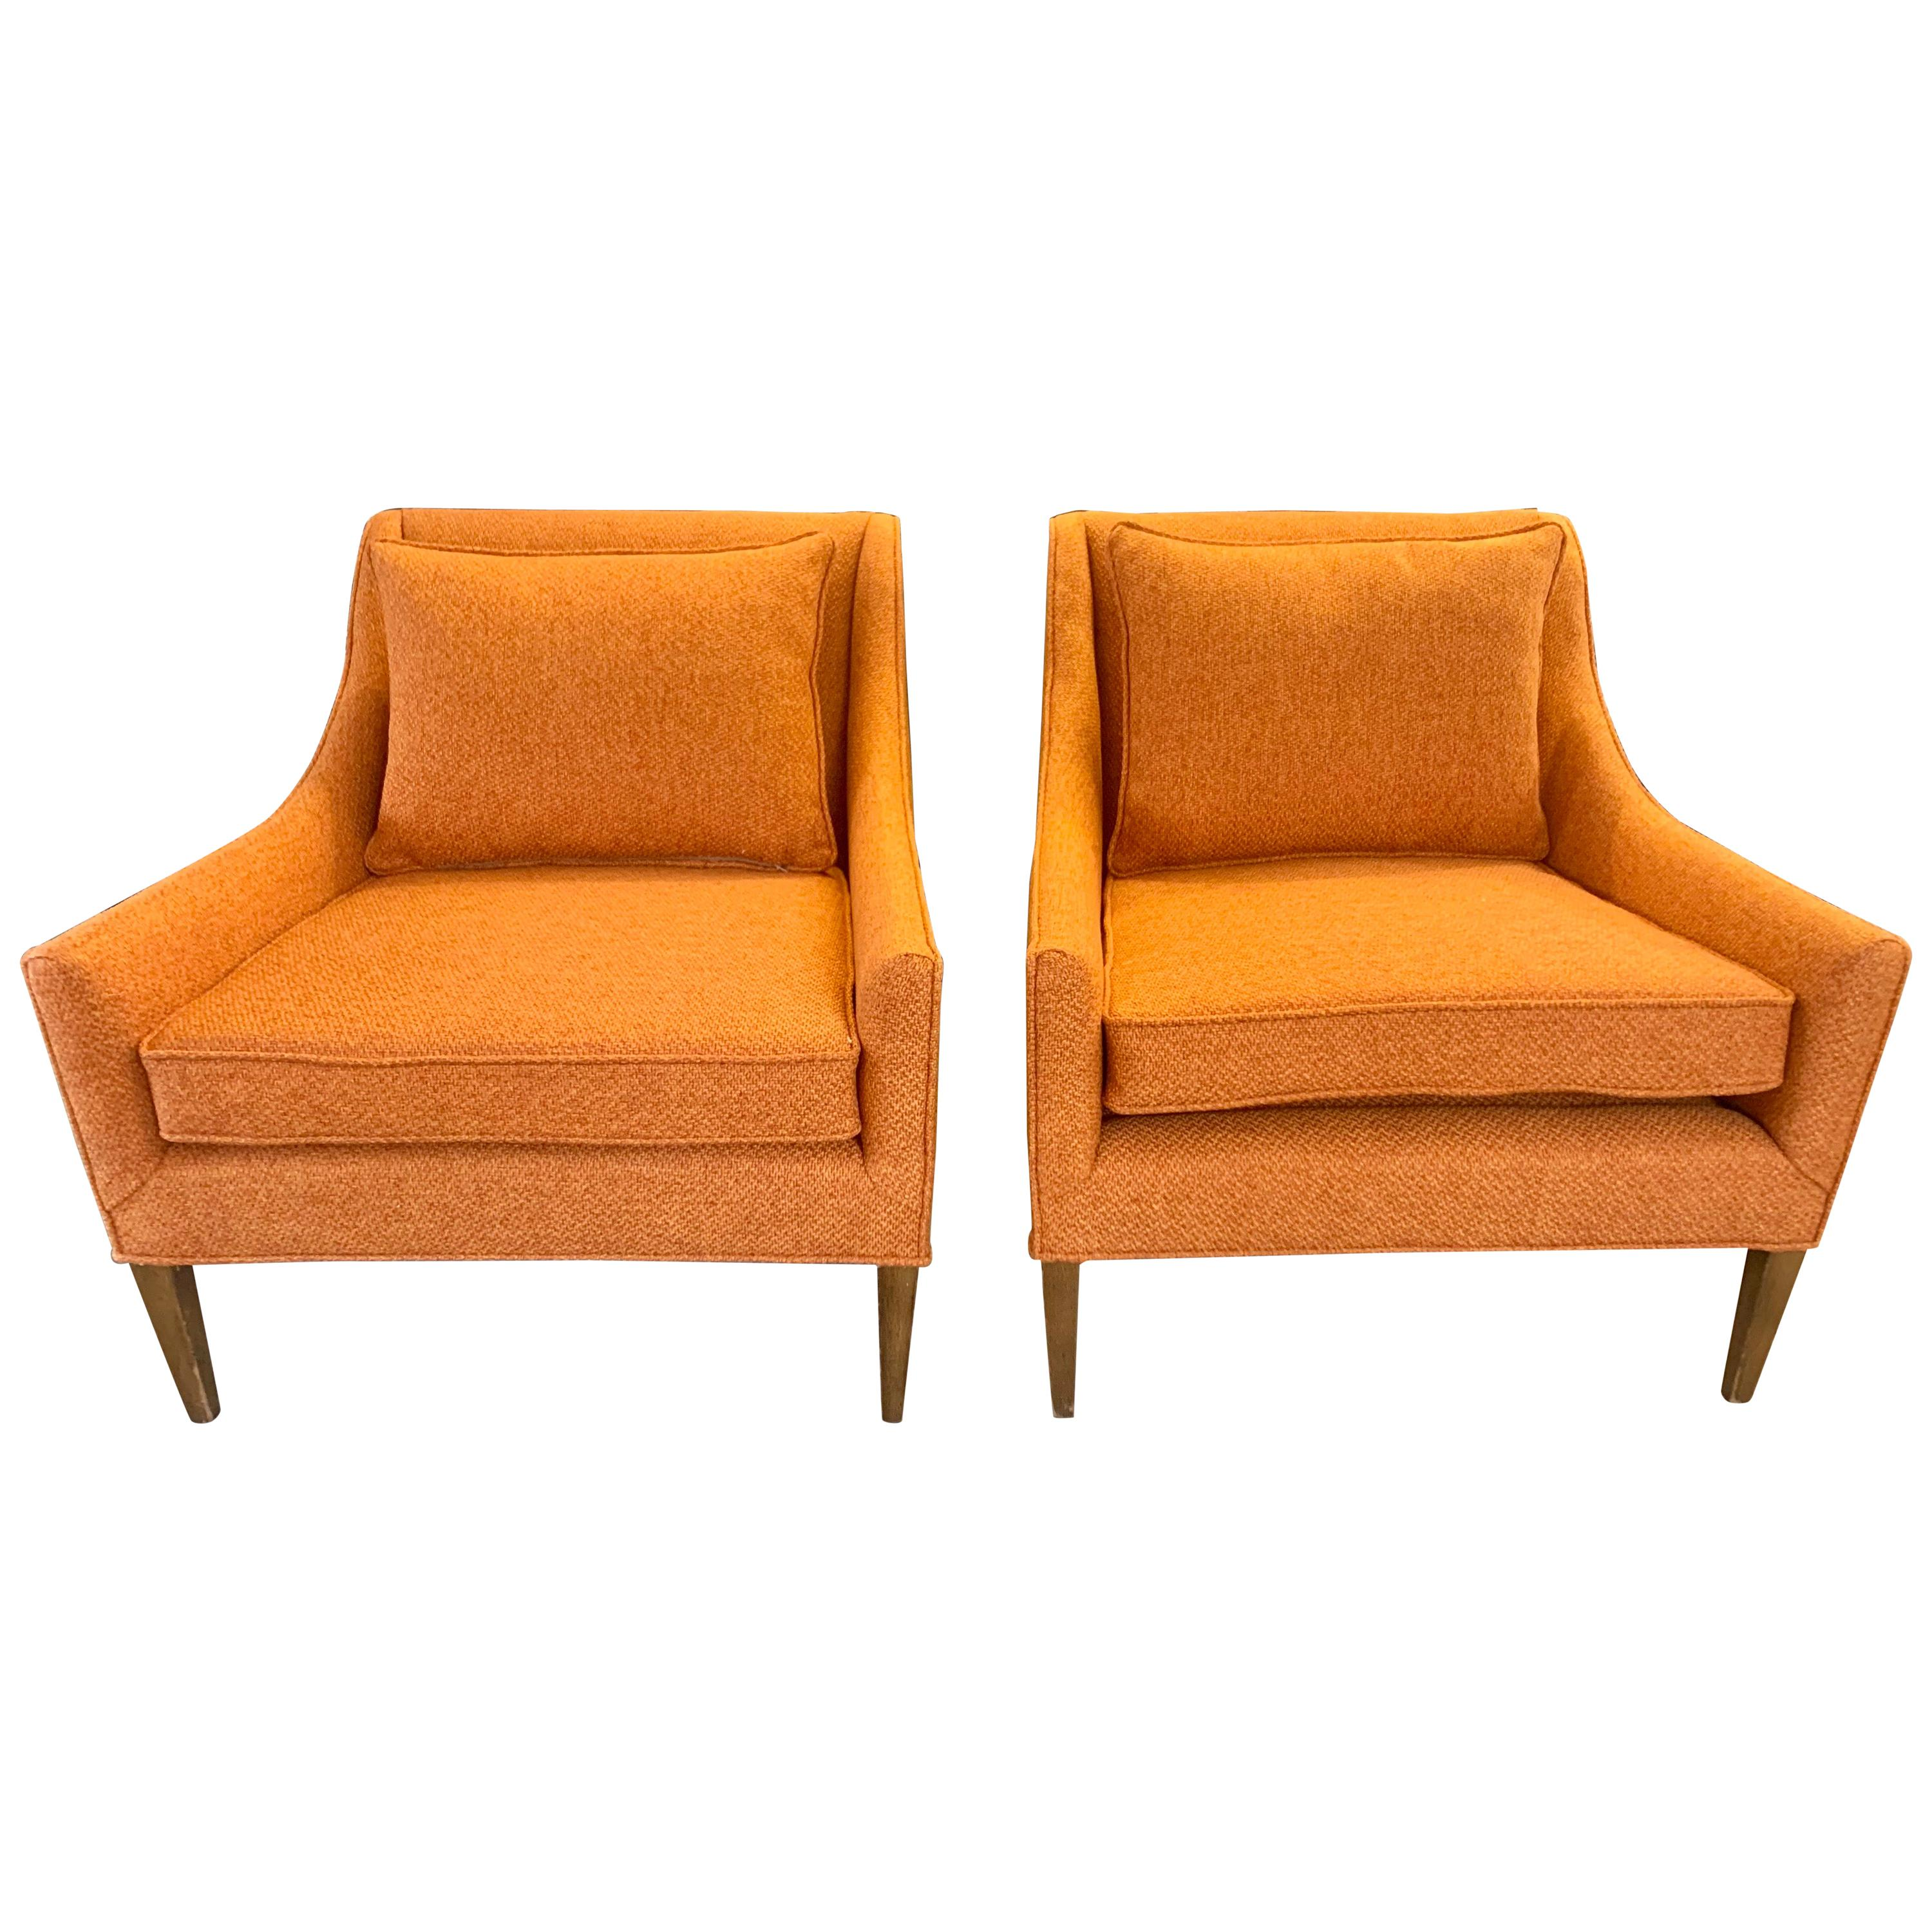 Pair Mid-Century Modern Newly Upholstered in Hermes Orange Colored Fabric Chairs